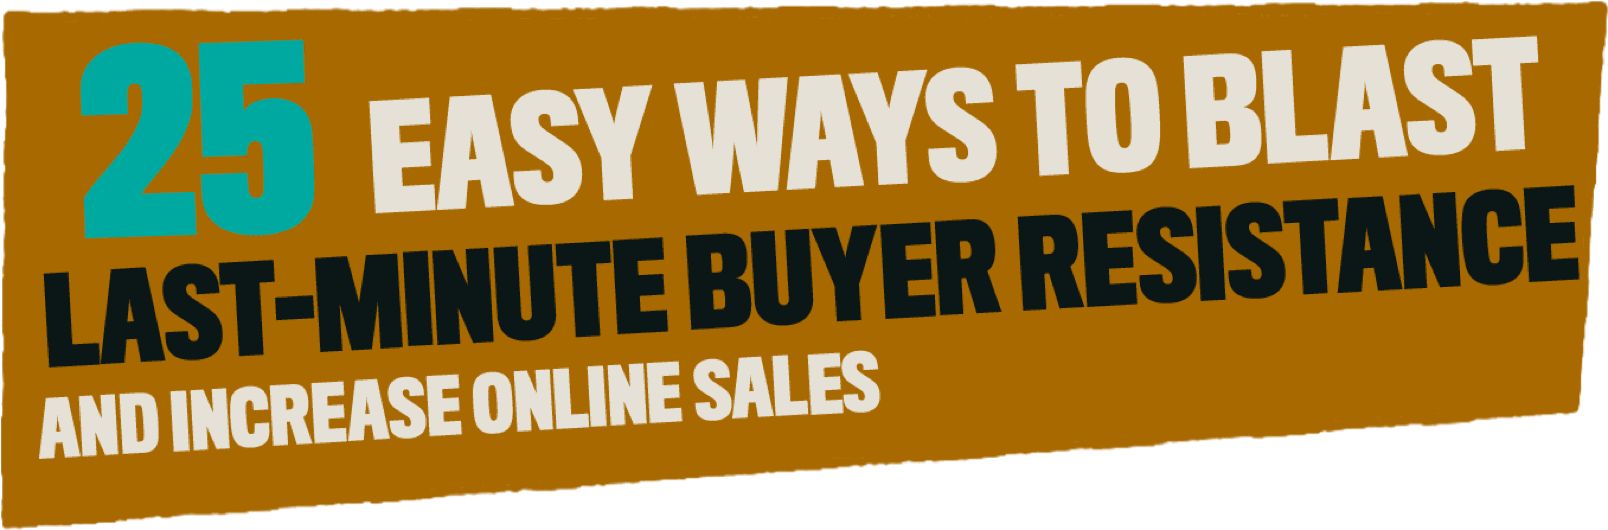 25 easy ways to blast last-minute buyer resistance and increase online sales